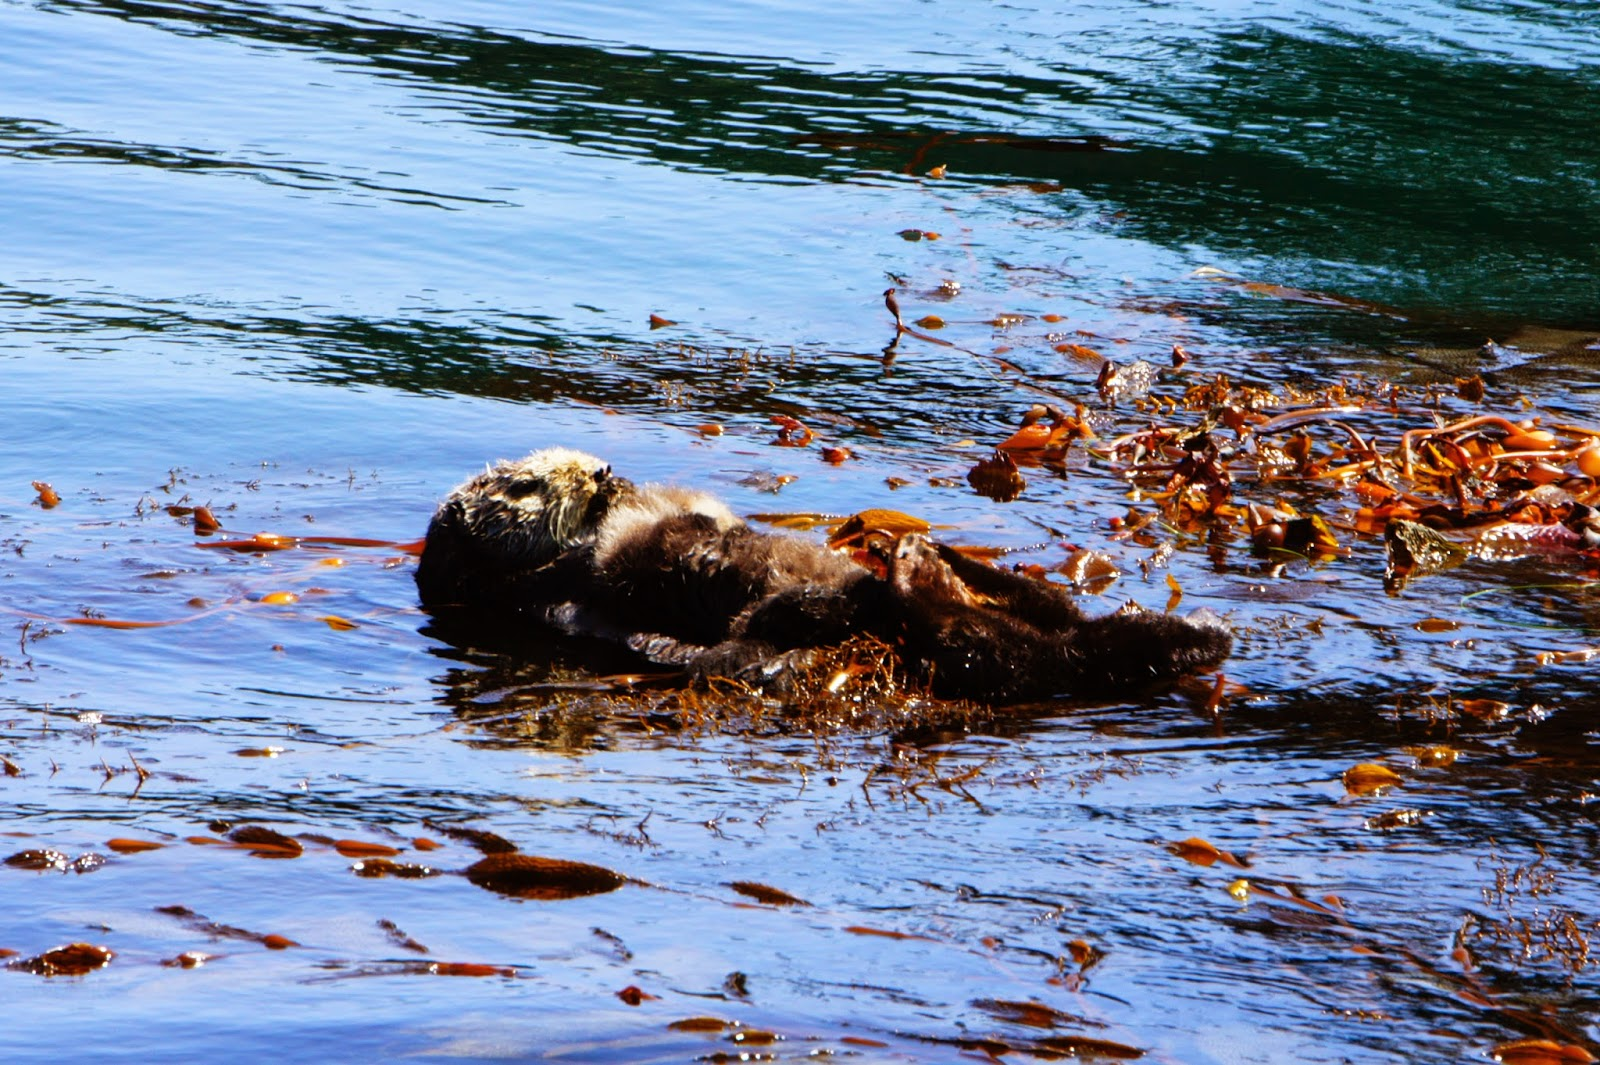 Otter at Whalers Cove Point Lobos State Reserve